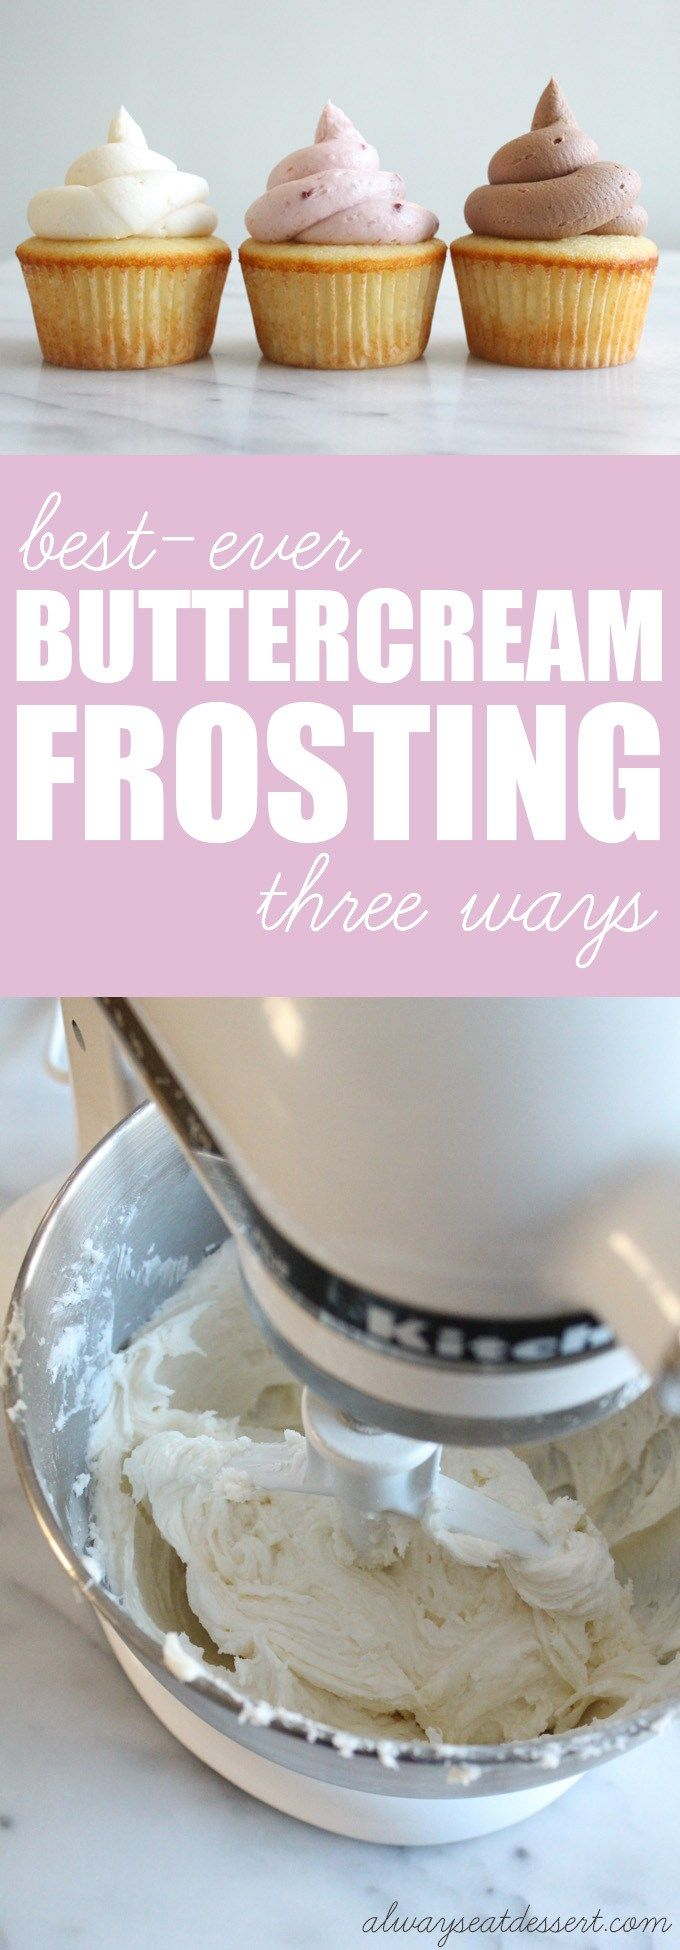 Best-Ever Buttercream Frosting 3 Ways #cupcakefrostingtips